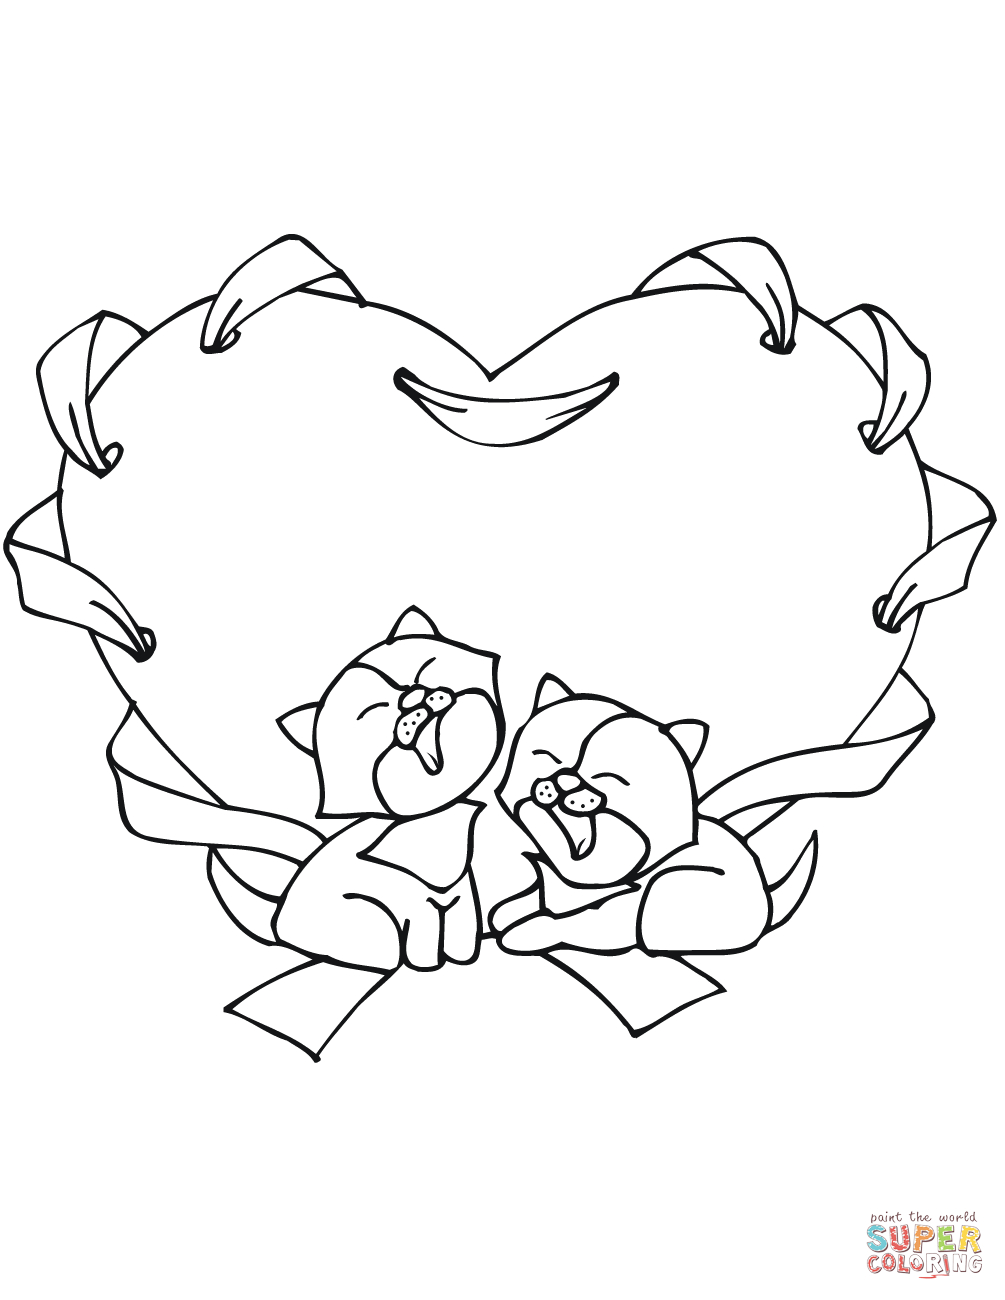 Love Bird Coloring Pages Love Bird Coloring Page Free Printable Coloring Pages